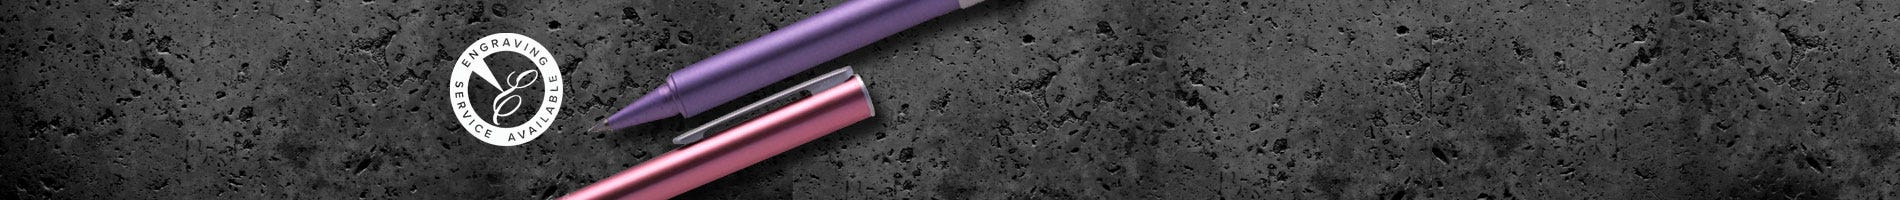 OHTO Tasche pink and purple rollerball pocket pen